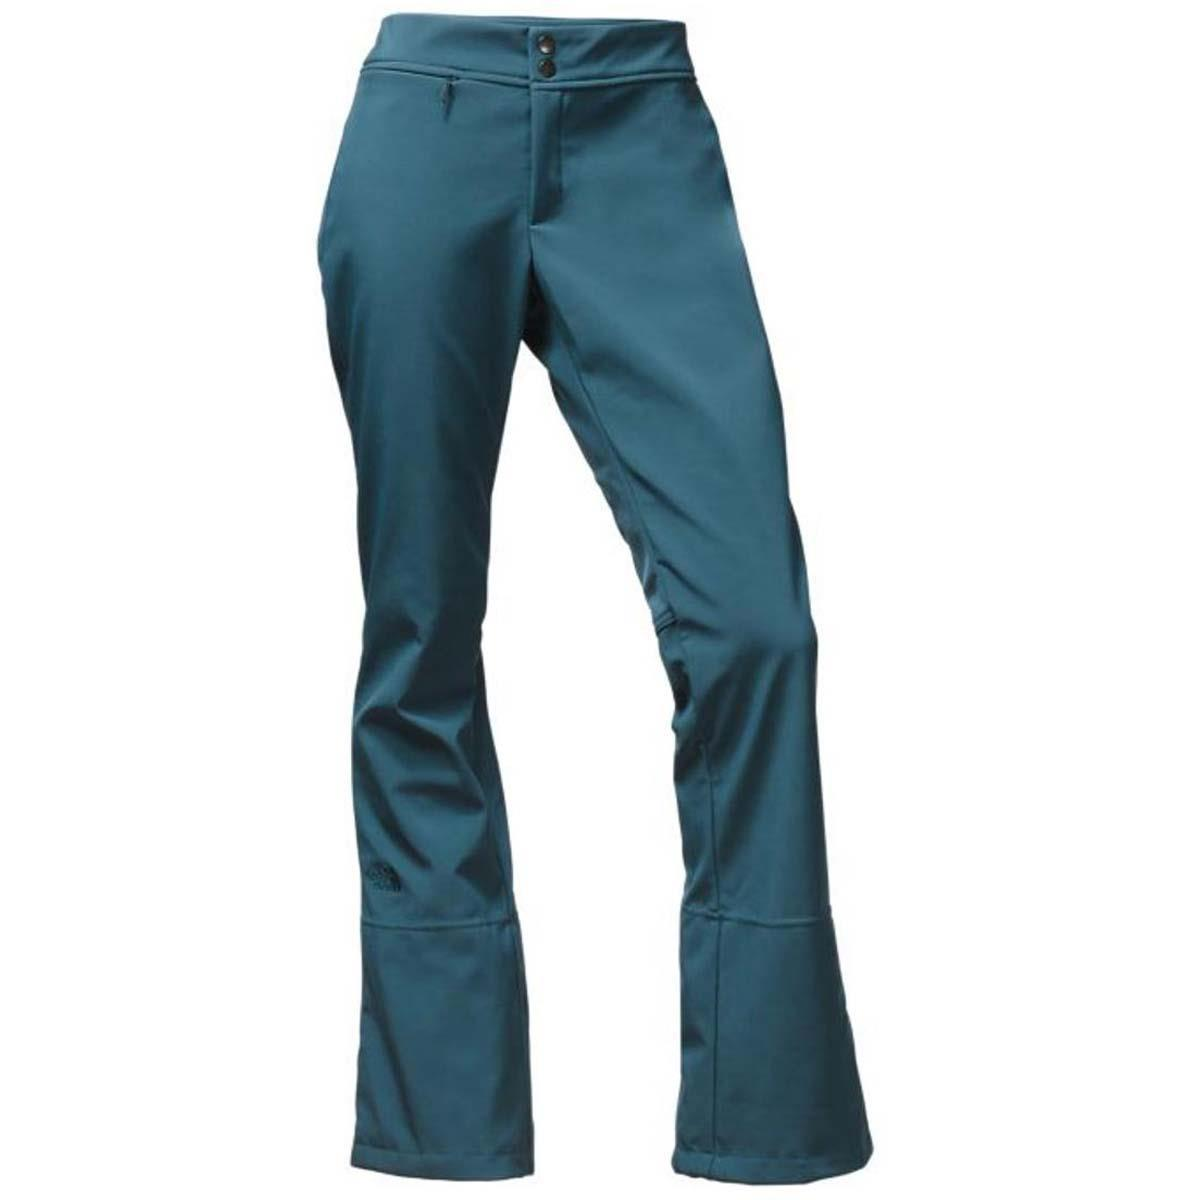 9c6843bbd The North Face Apex STH Pant - Women's